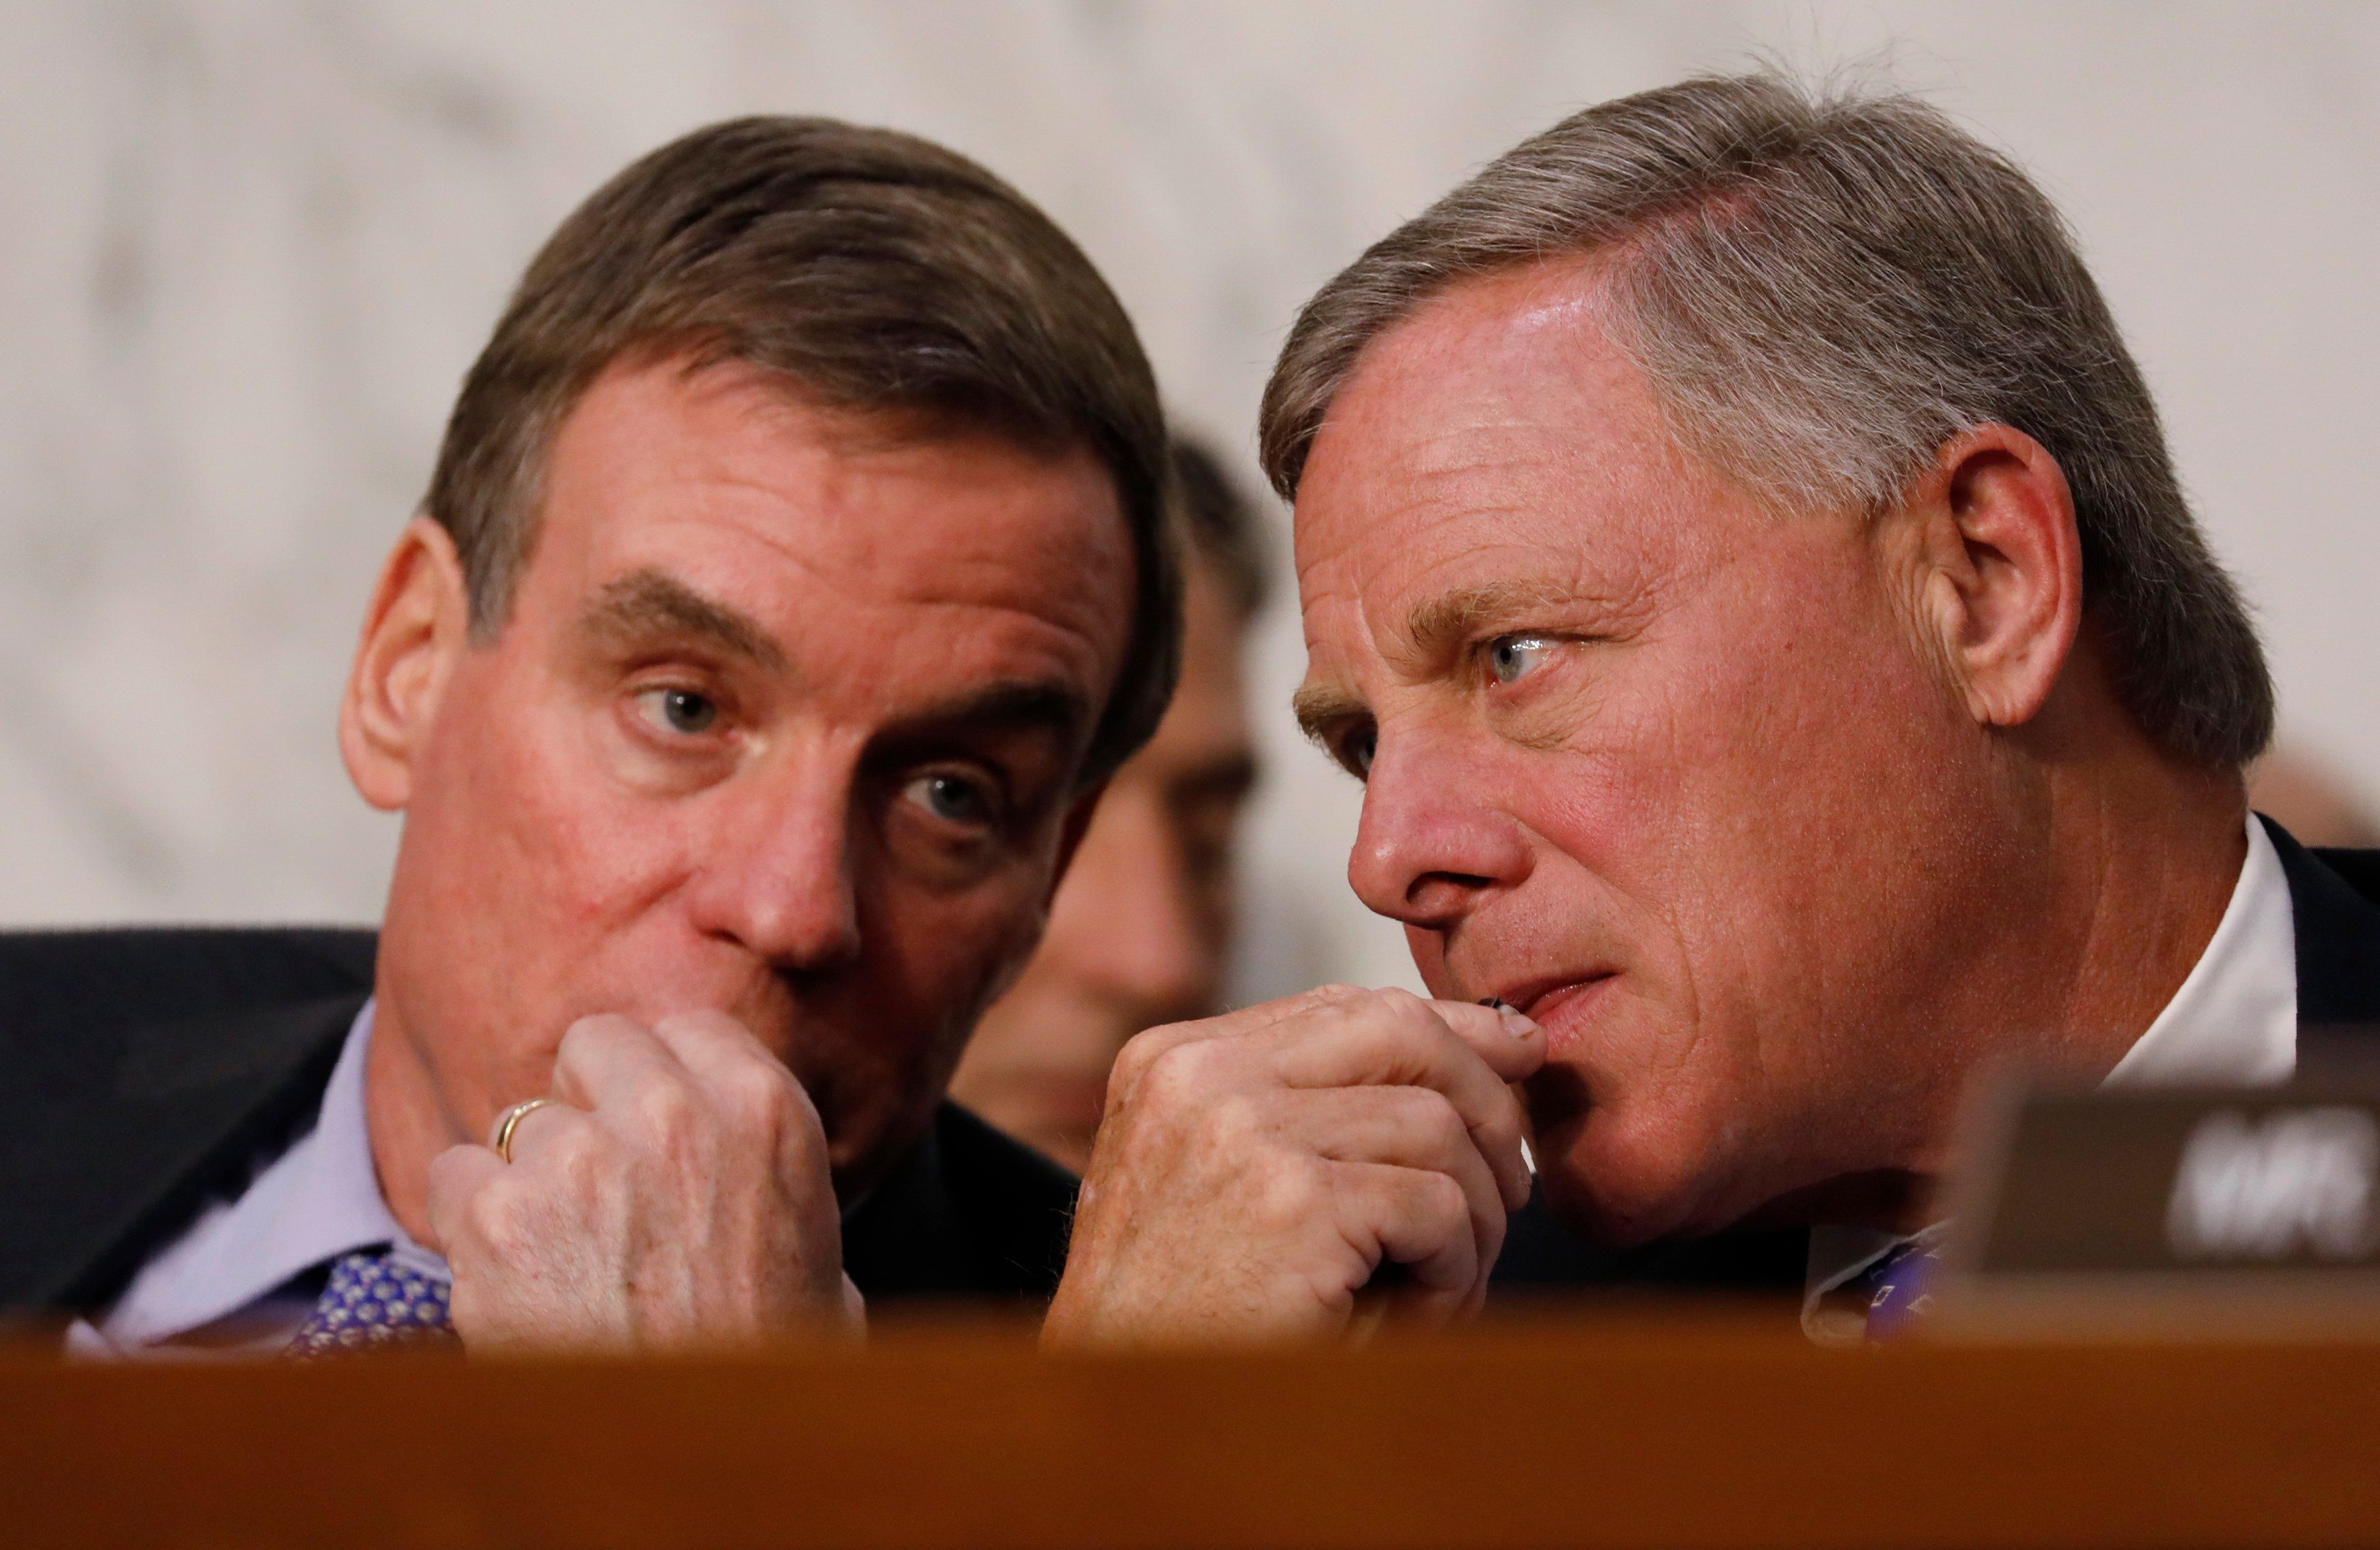 Senate Intelligence Committee vice chairman Sen. Mark Warner and chairman Sen. Richard Burr listen as U.S. Attorney General J